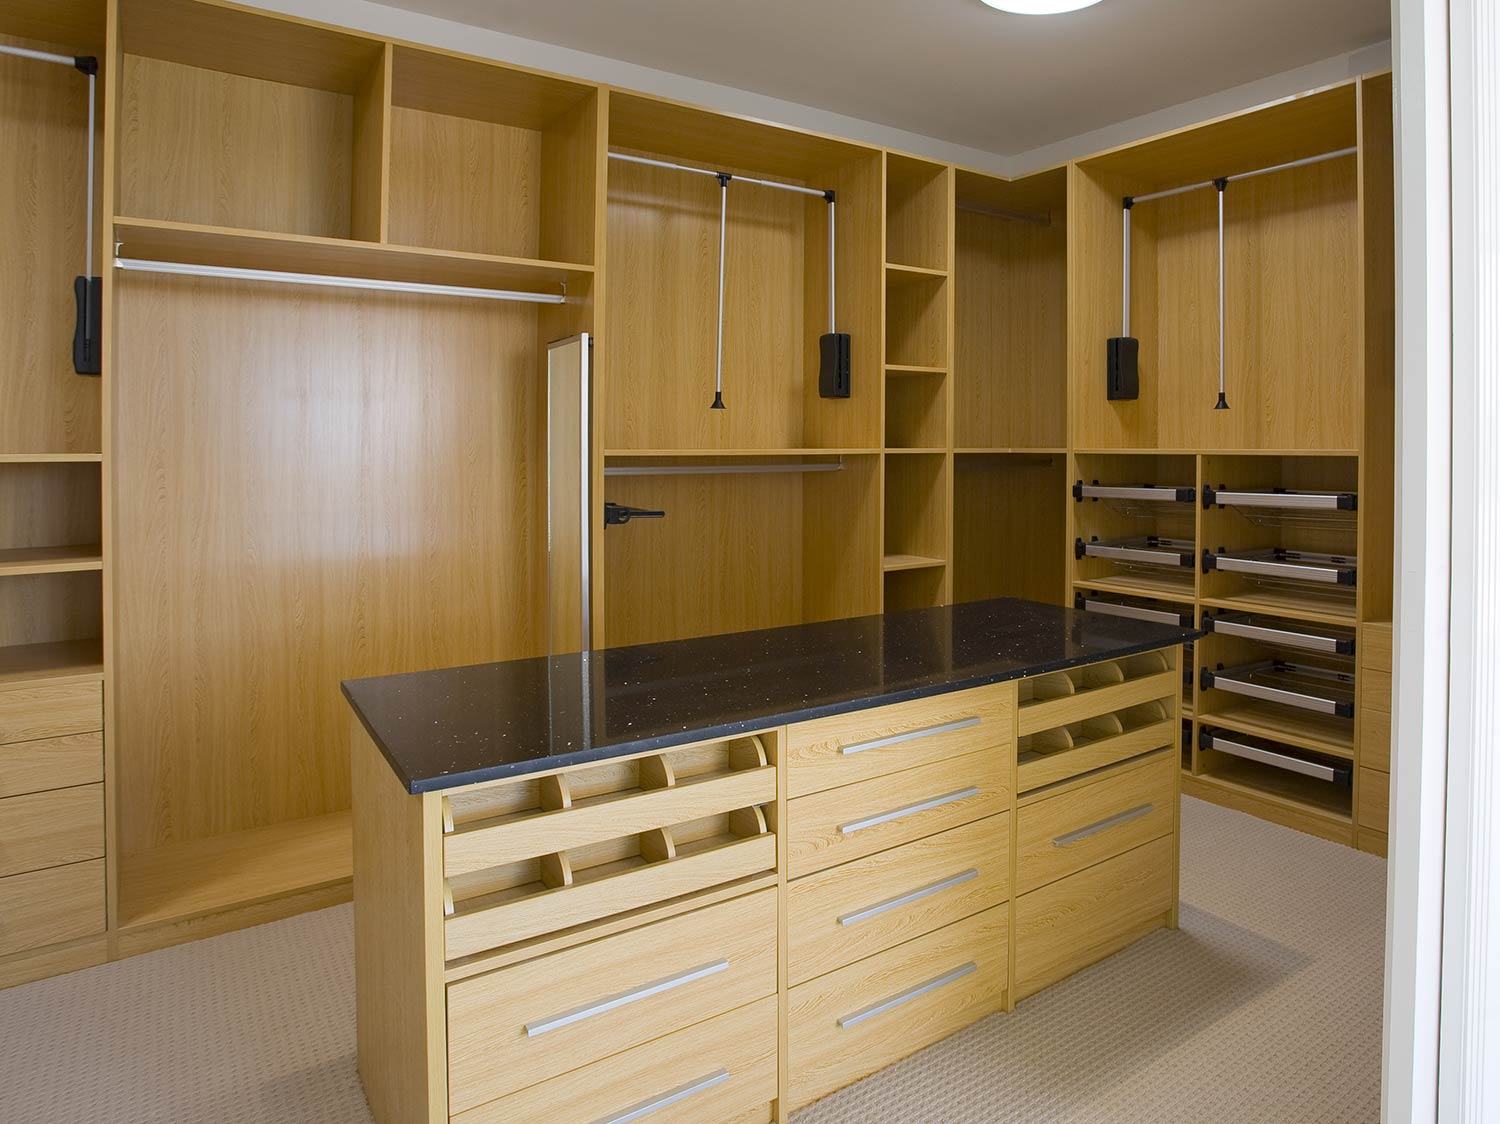 Contemporary oak walk in wardrobe with granite effect tops. Various storage solutions have been used here including pull out hangers for easy access, pull out shelves, draws and pull out tie racks.